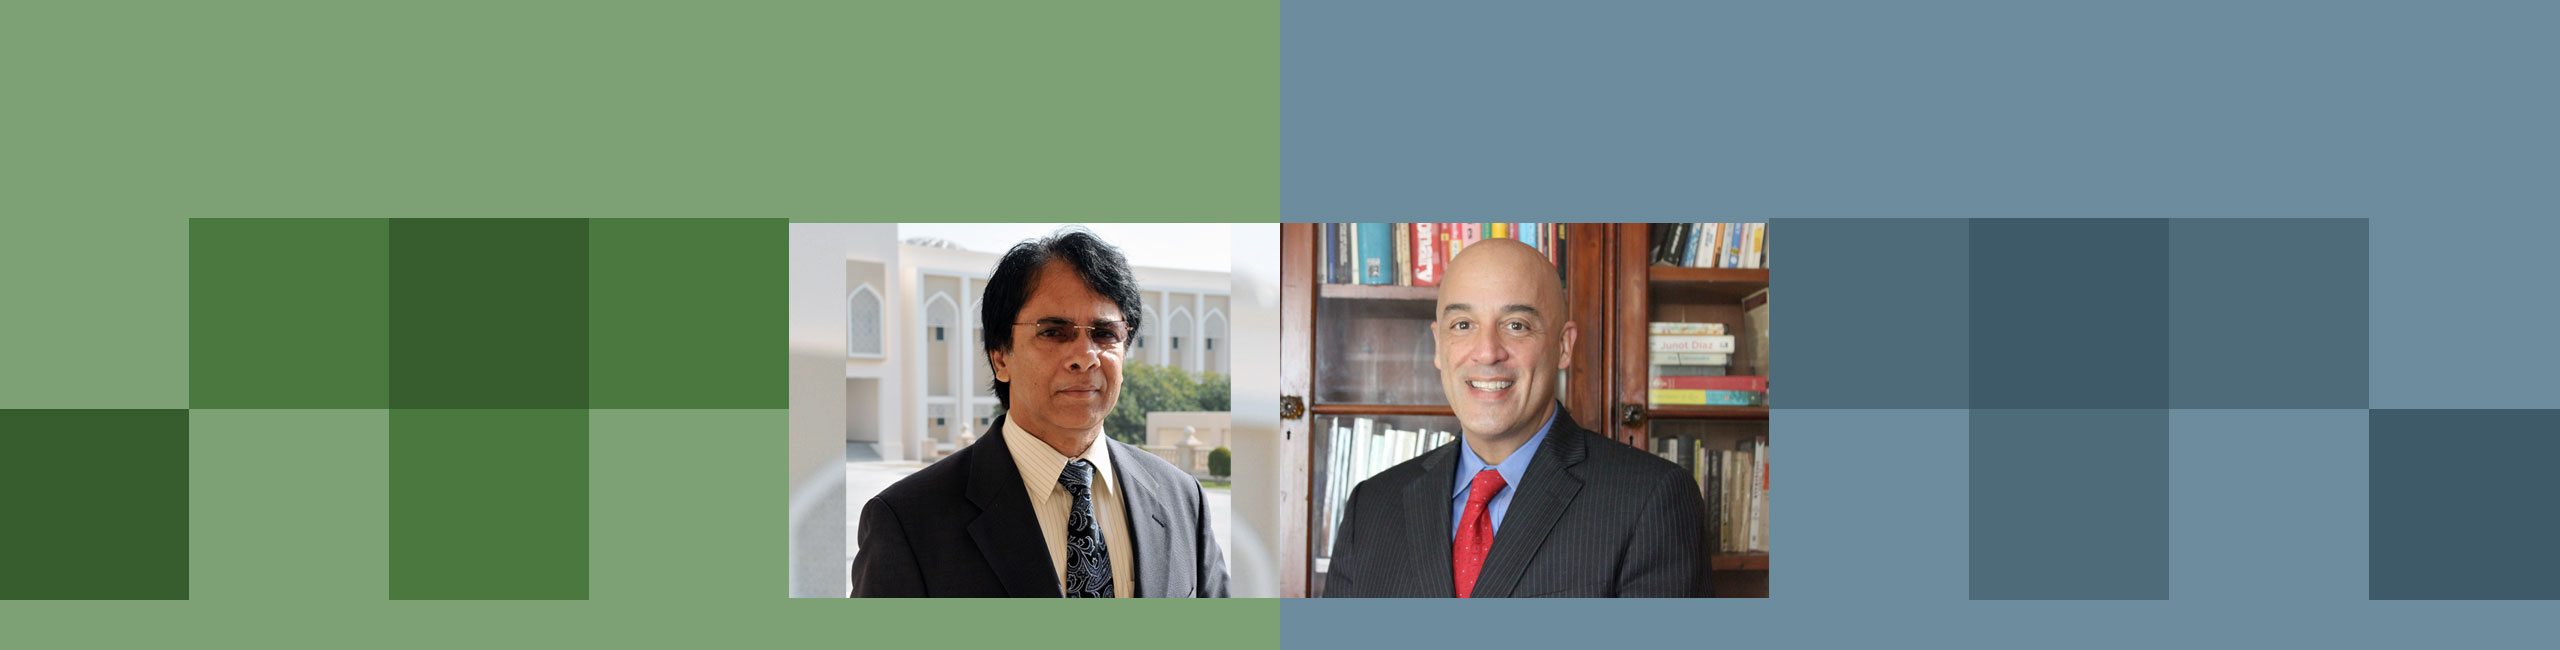 Lehman College Welcomes Two New Deans